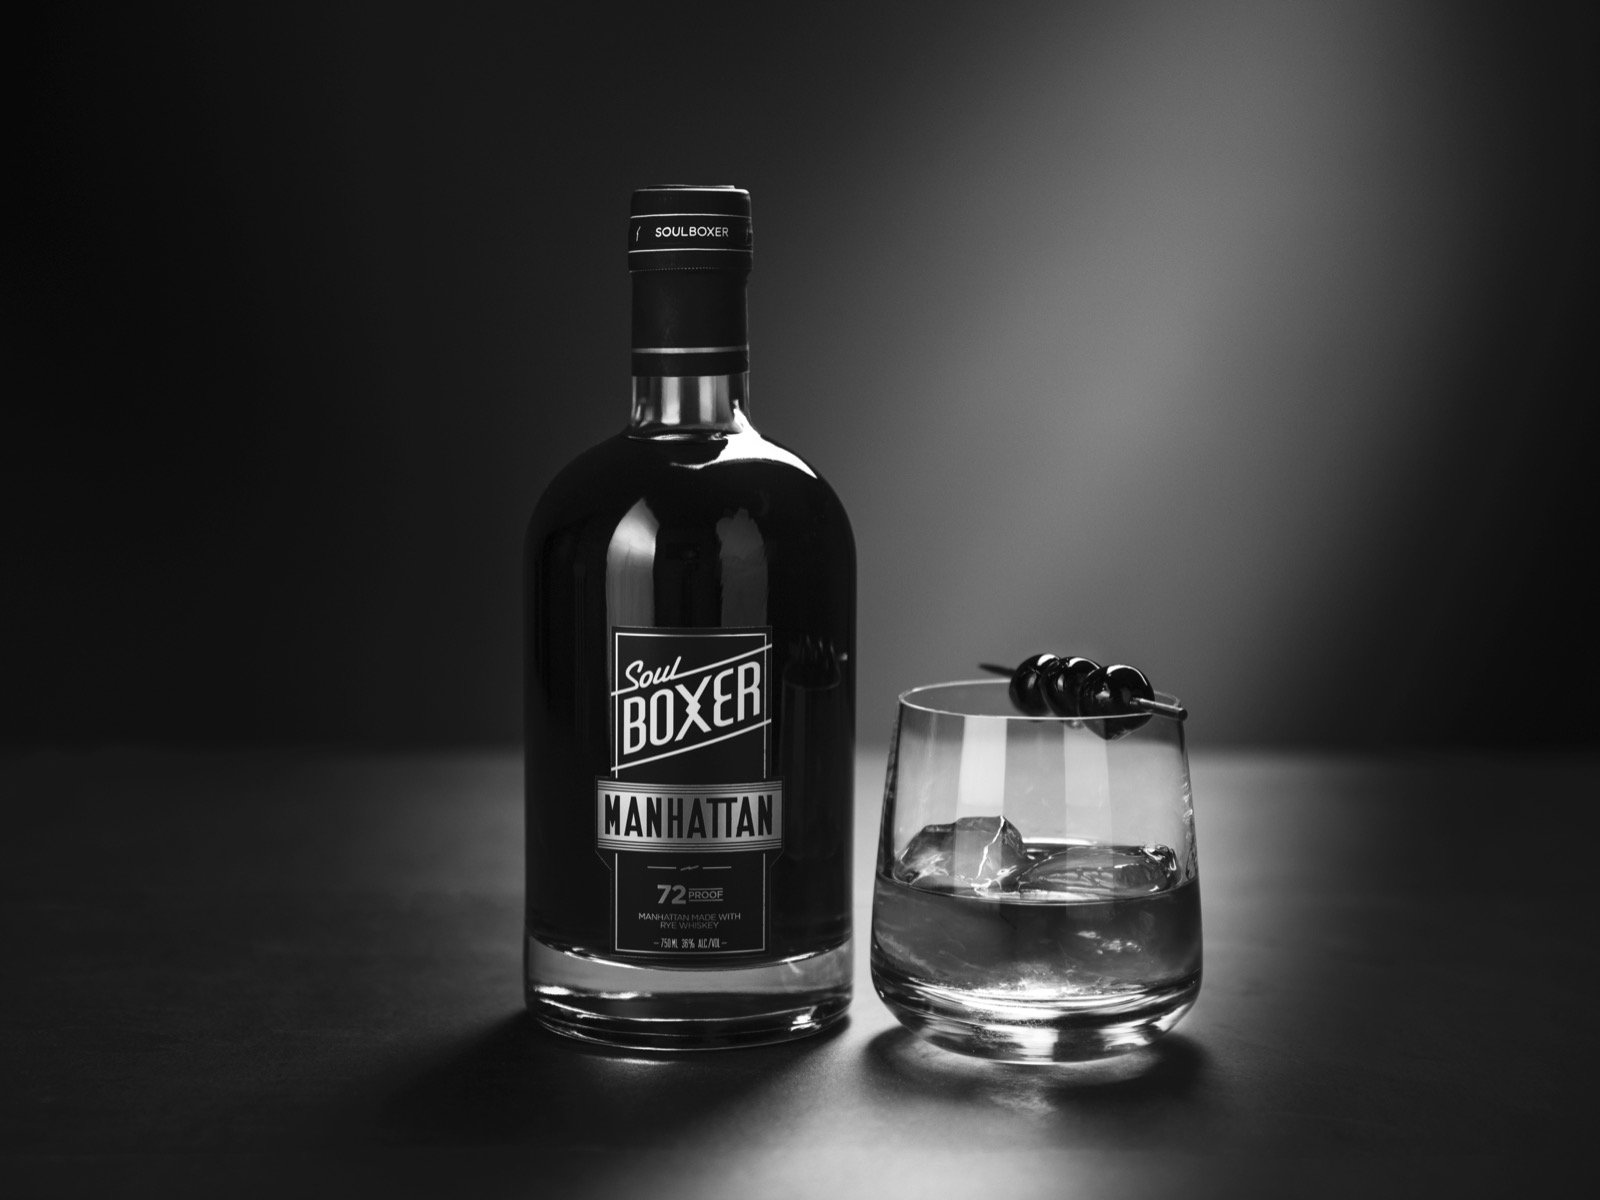 SoulBoxer rolls out yet another iconic ready-to-drink cocktail: The Manhattan